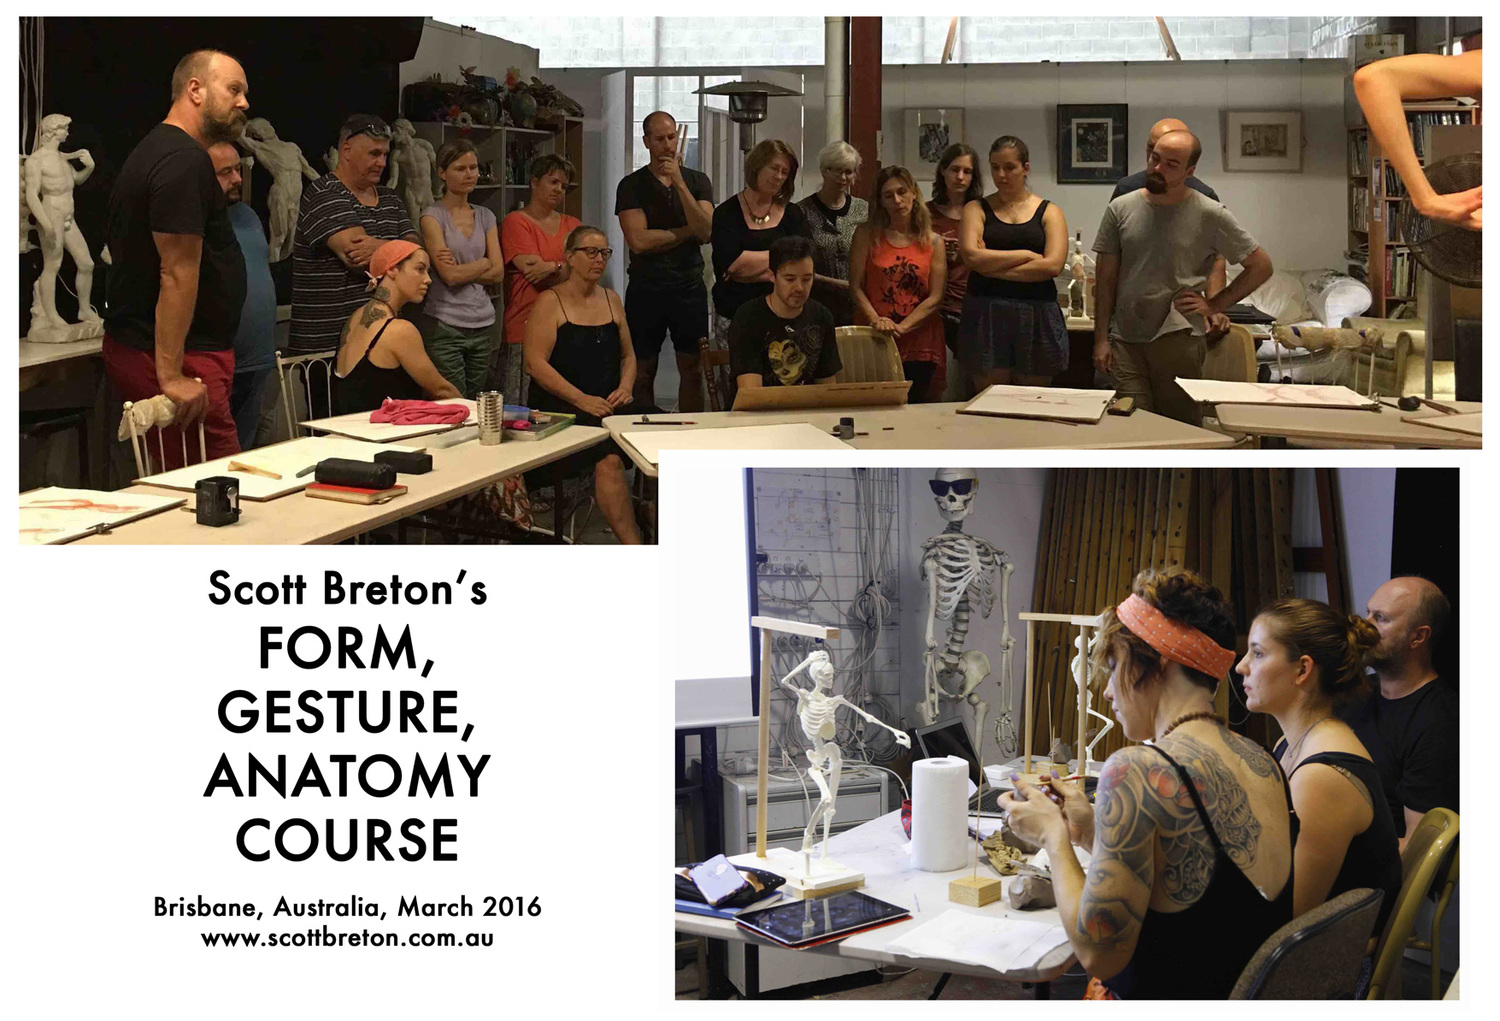 Shots from in the Form, Gesture, Anatomy Course from Brisbane, 2016